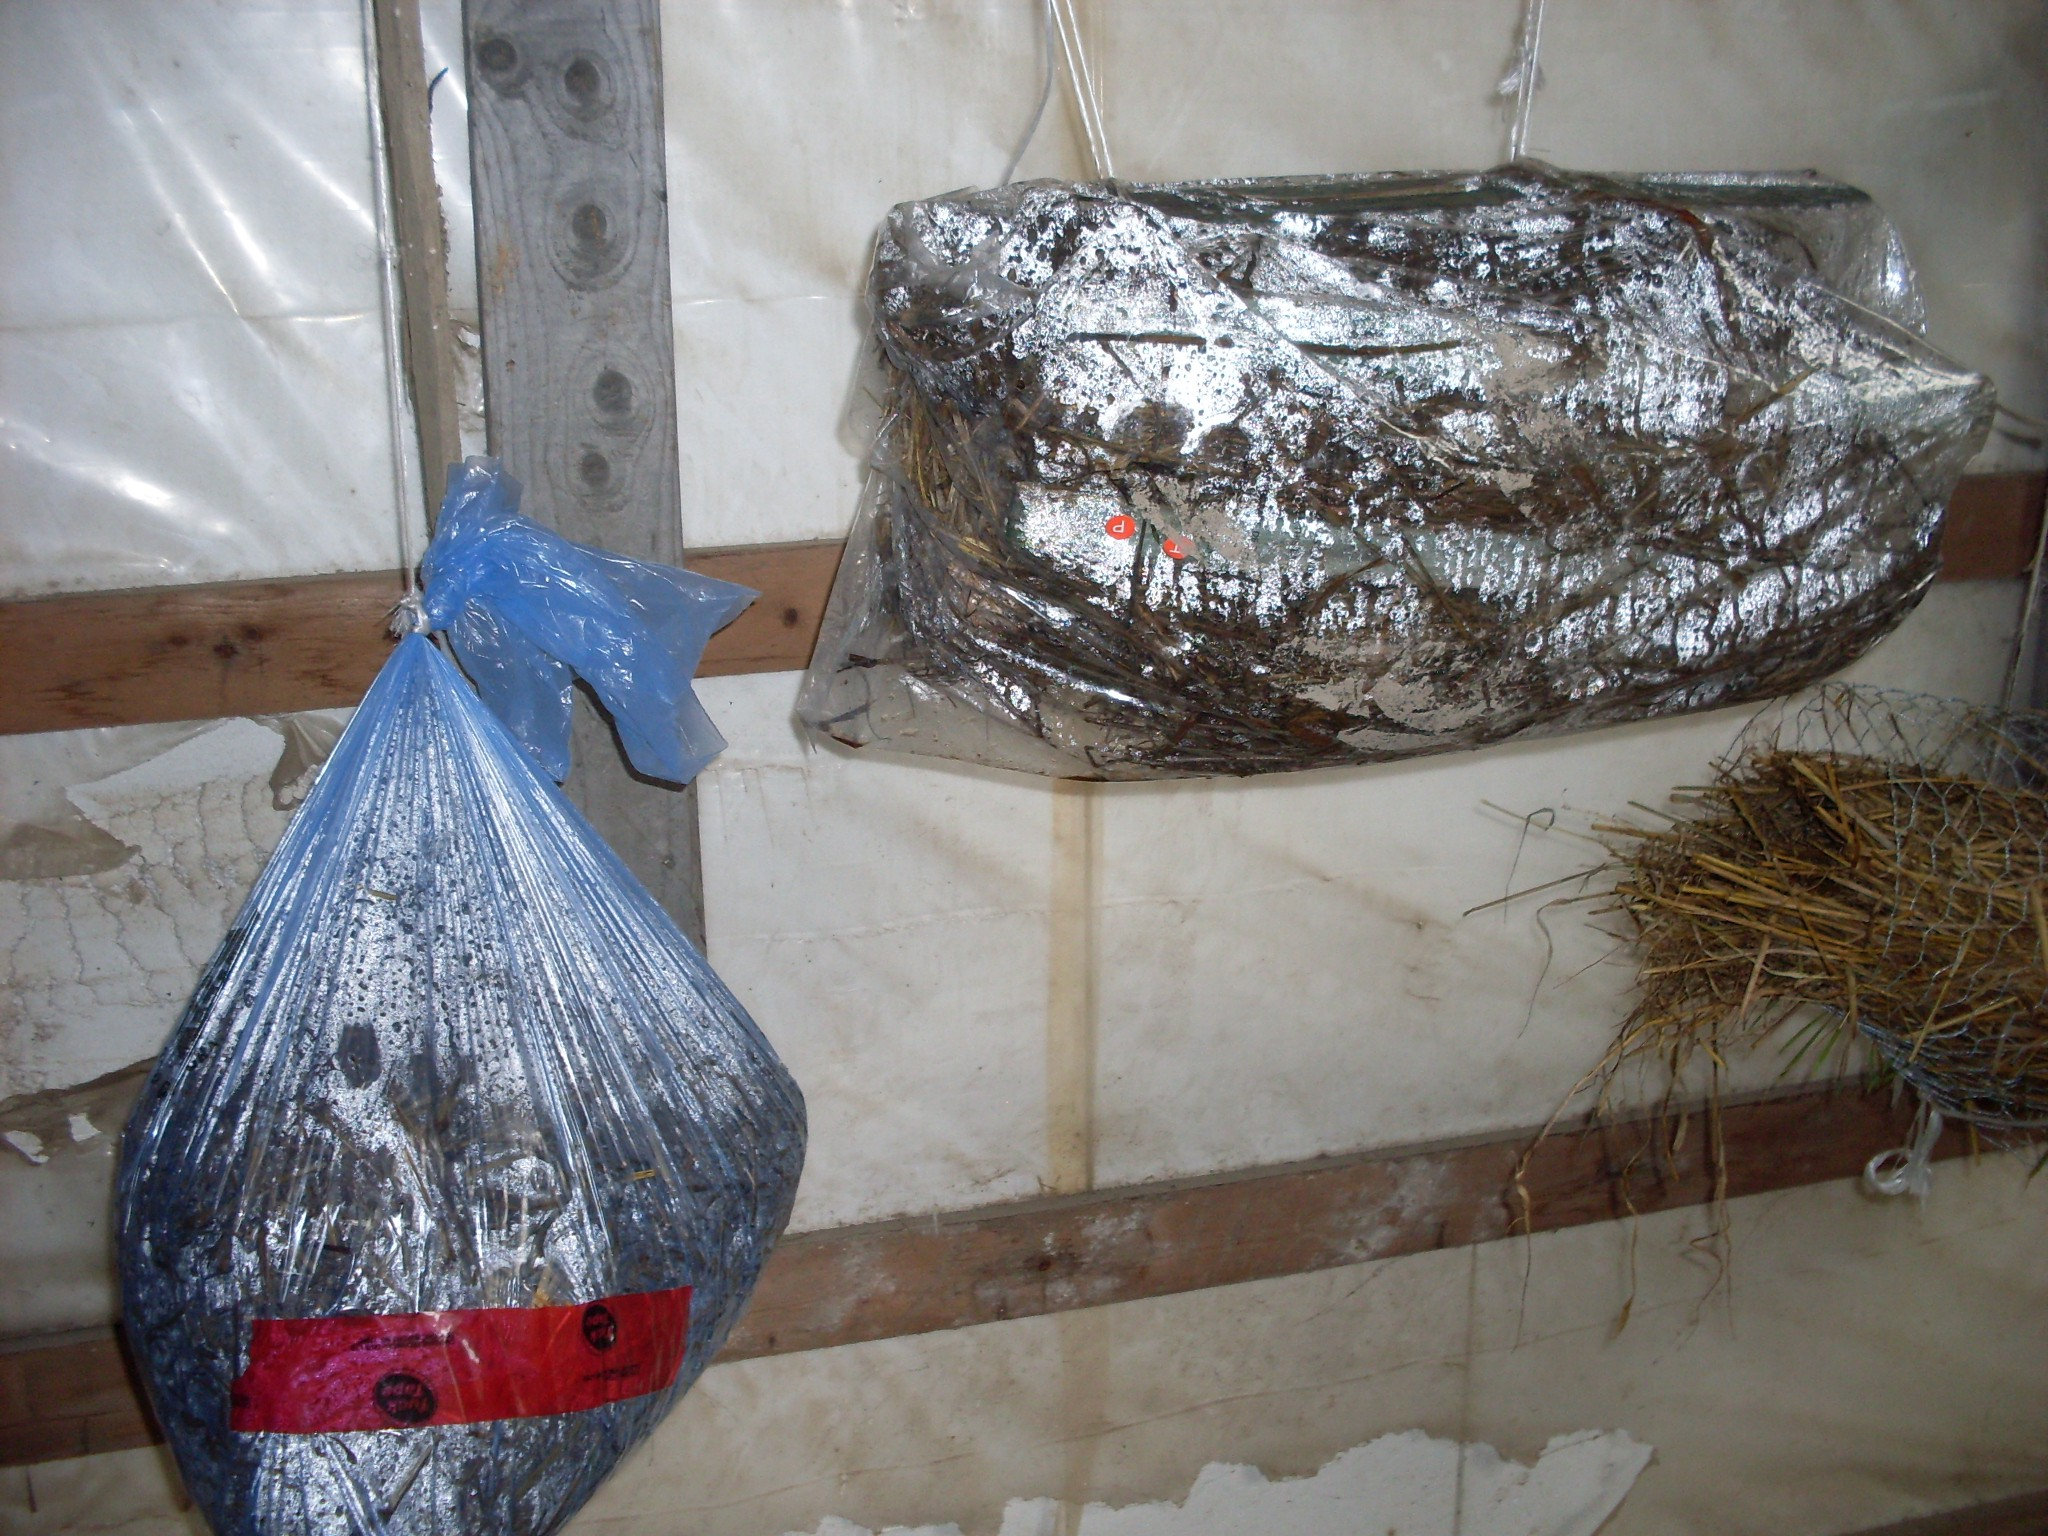 In search of: non-sterile mushroom cultivation tek